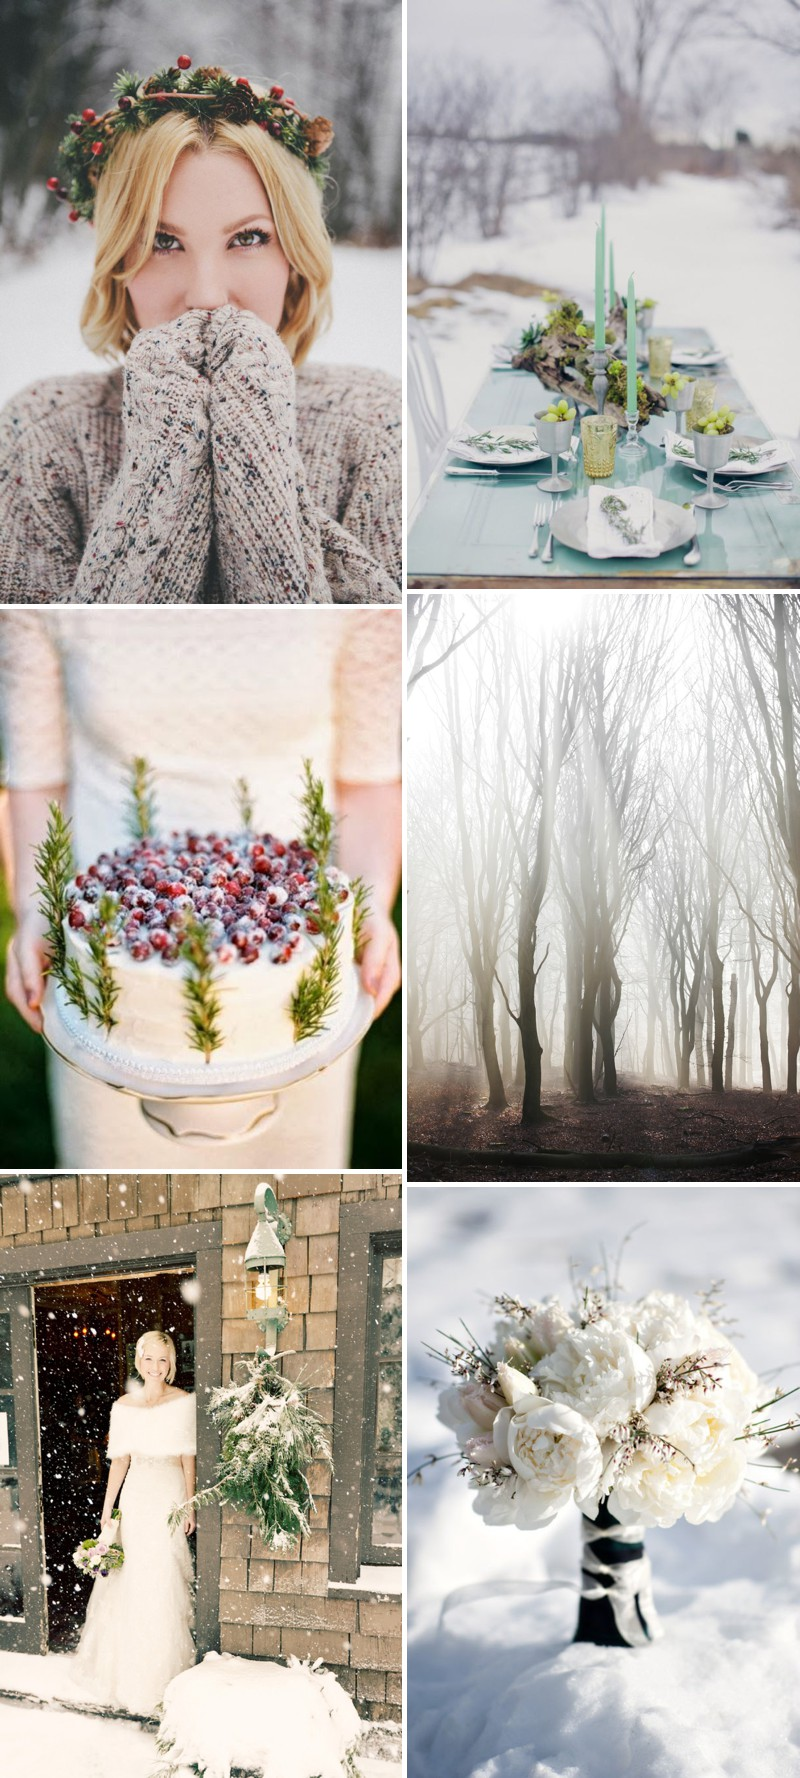 An Exquisite Winter Wedding Theme By Rock My Wedding's Pinterest Competition Winner